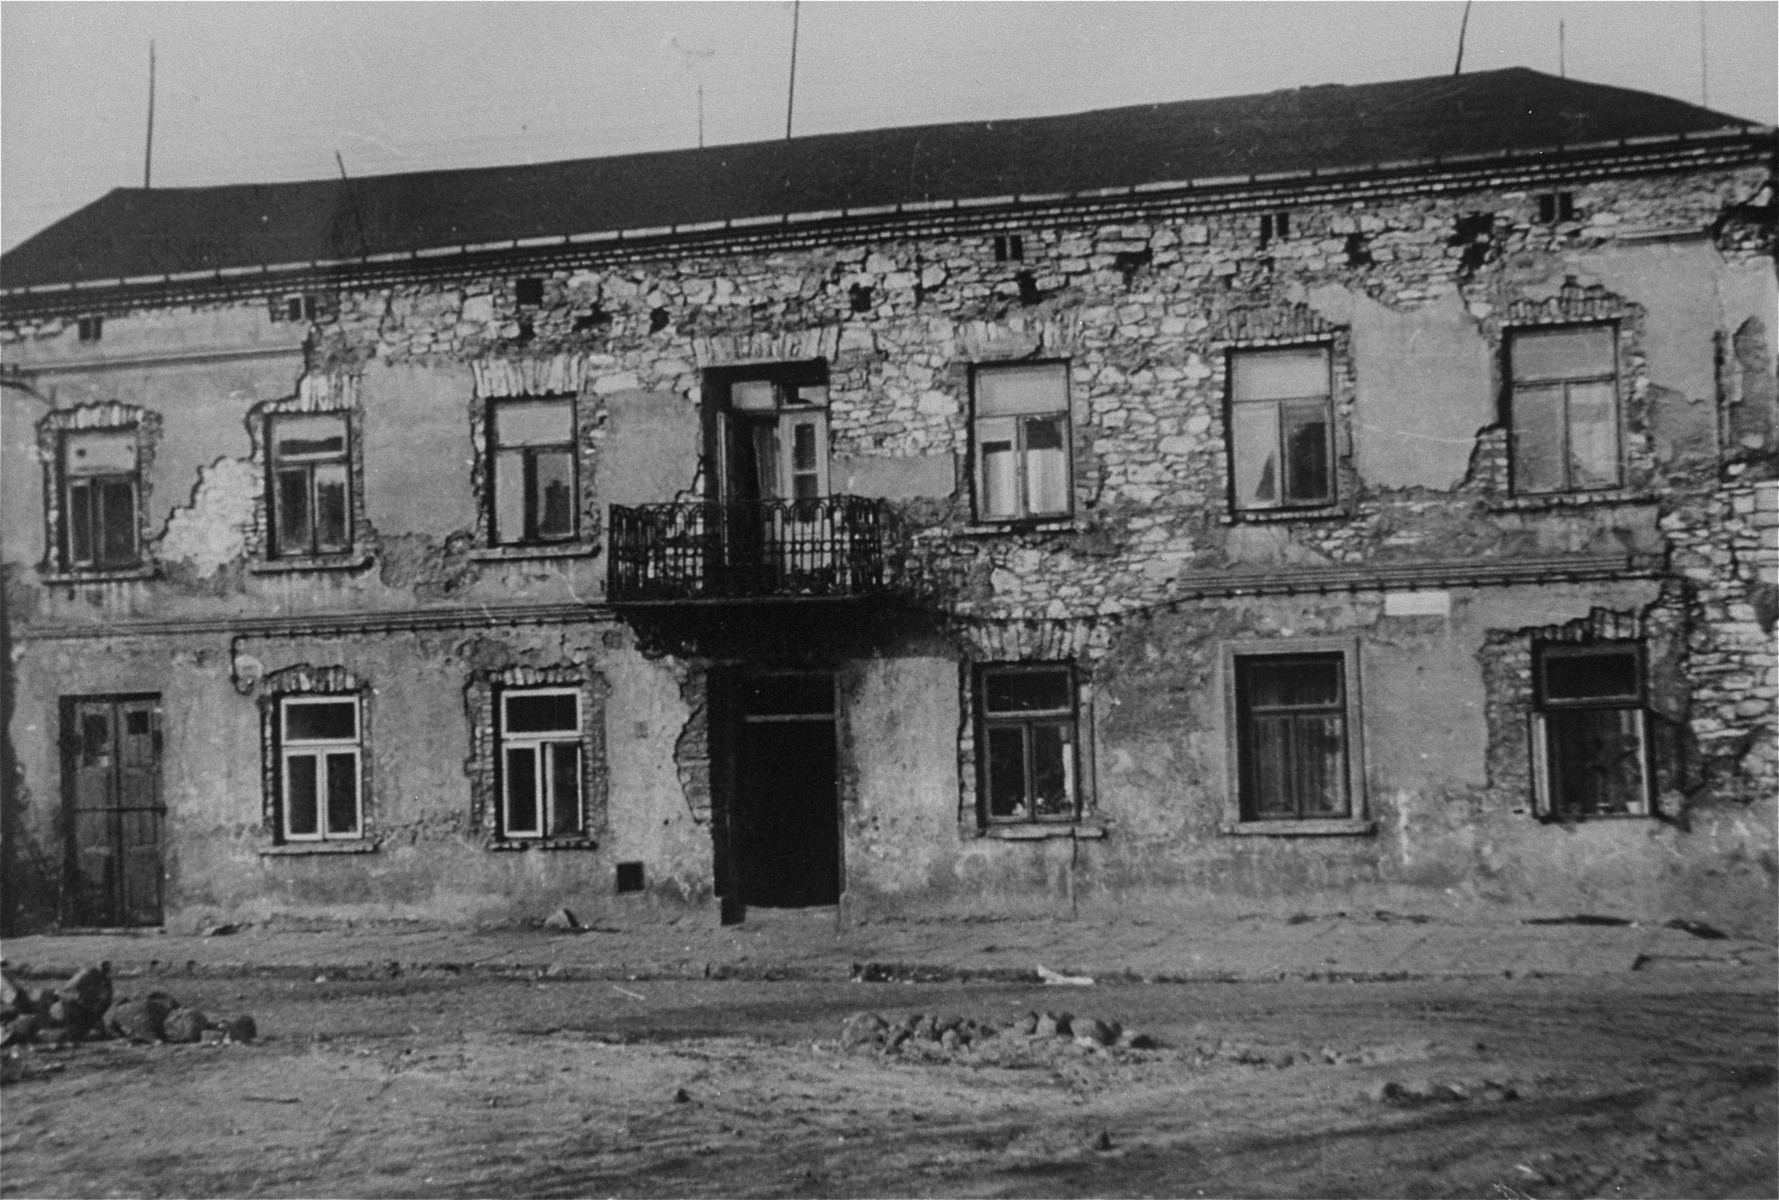 View of an abandoned building at the intersection of Rynek Warszawski and Jaskrowska Streets in Czestochowa, where the German police station was located.